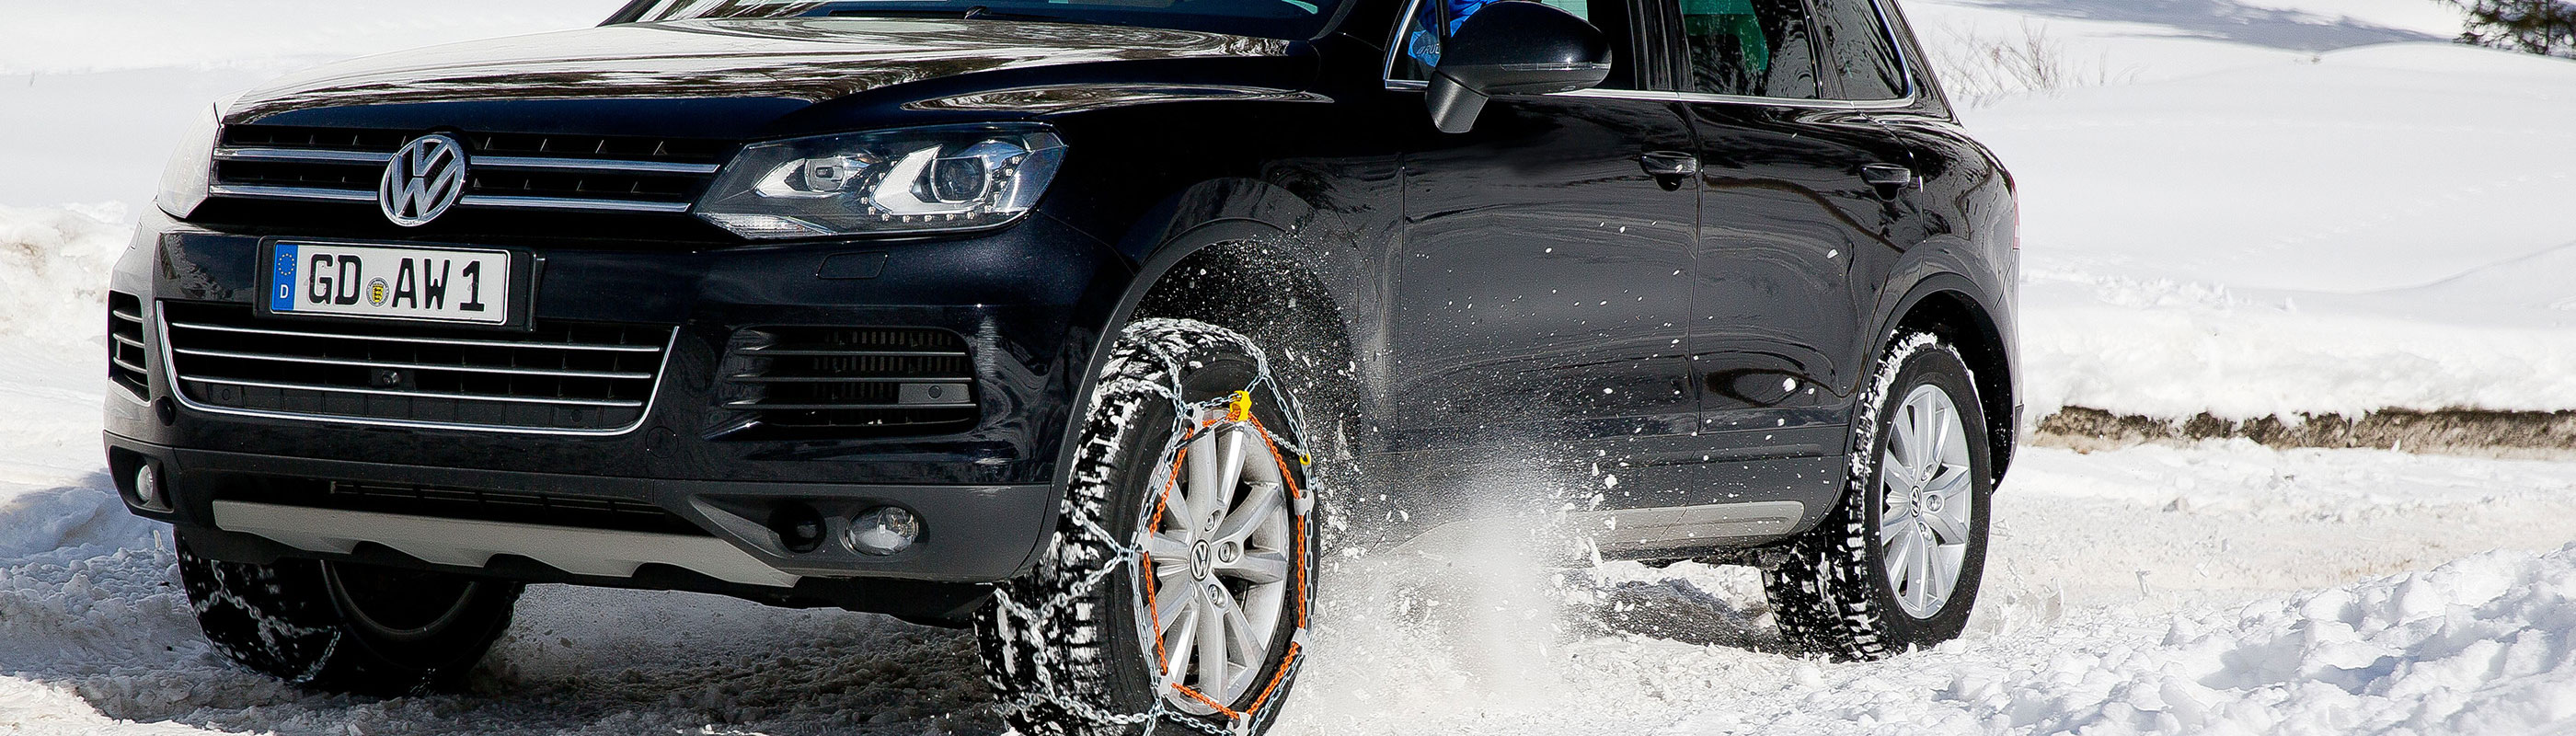 Snow Chains Shoe Chains Rud